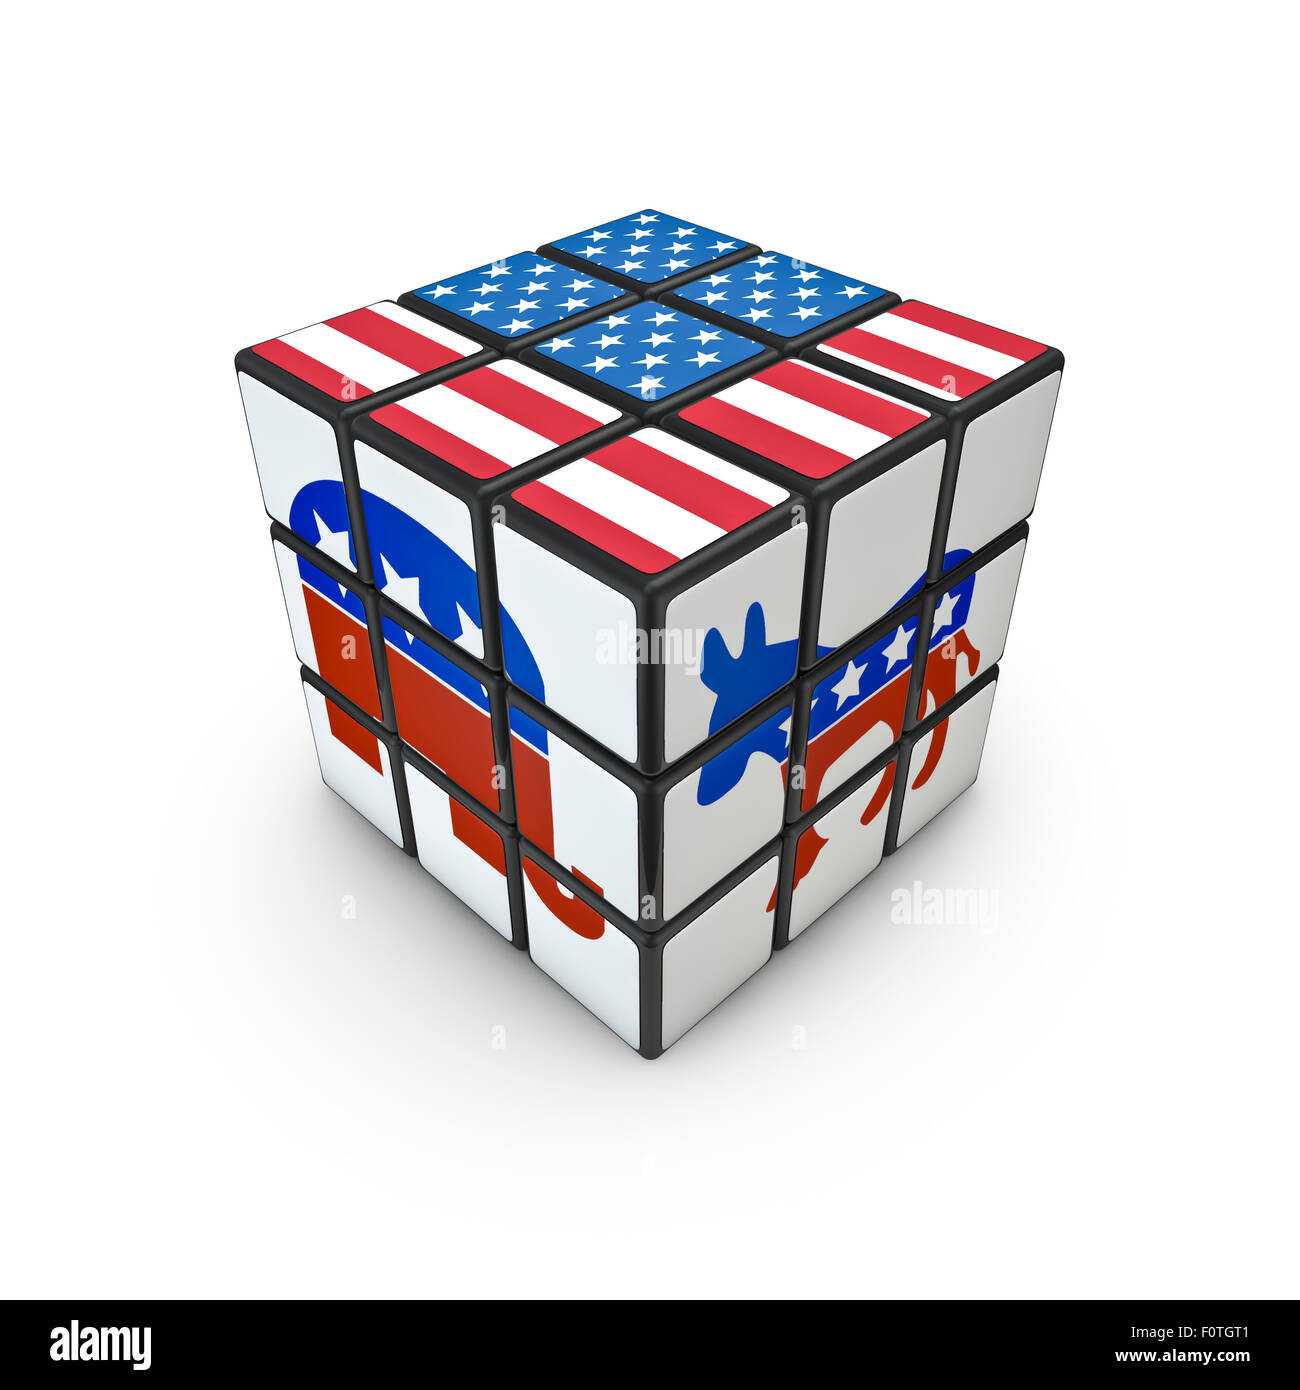 Election Day Puzzle 3d Render Of Puzzle Cube With Usa Flag And